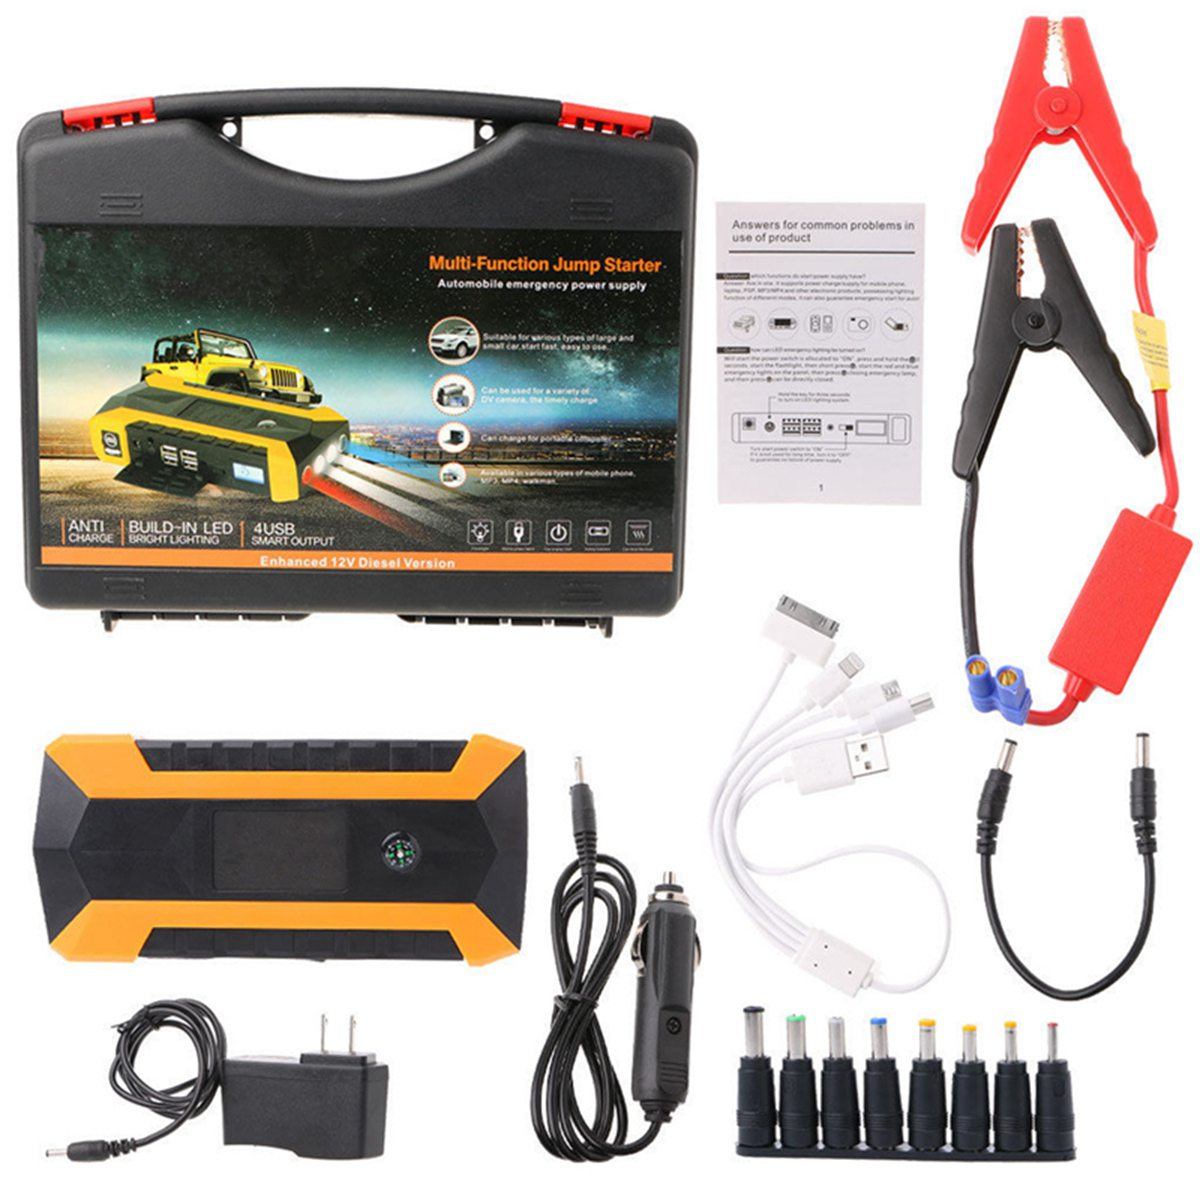 все цены на 89800mAh Car Jump Starter 12V 4USB 600A Portable Car Battery Booster Charger Booster Power Bank Starting Device Car Starter онлайн